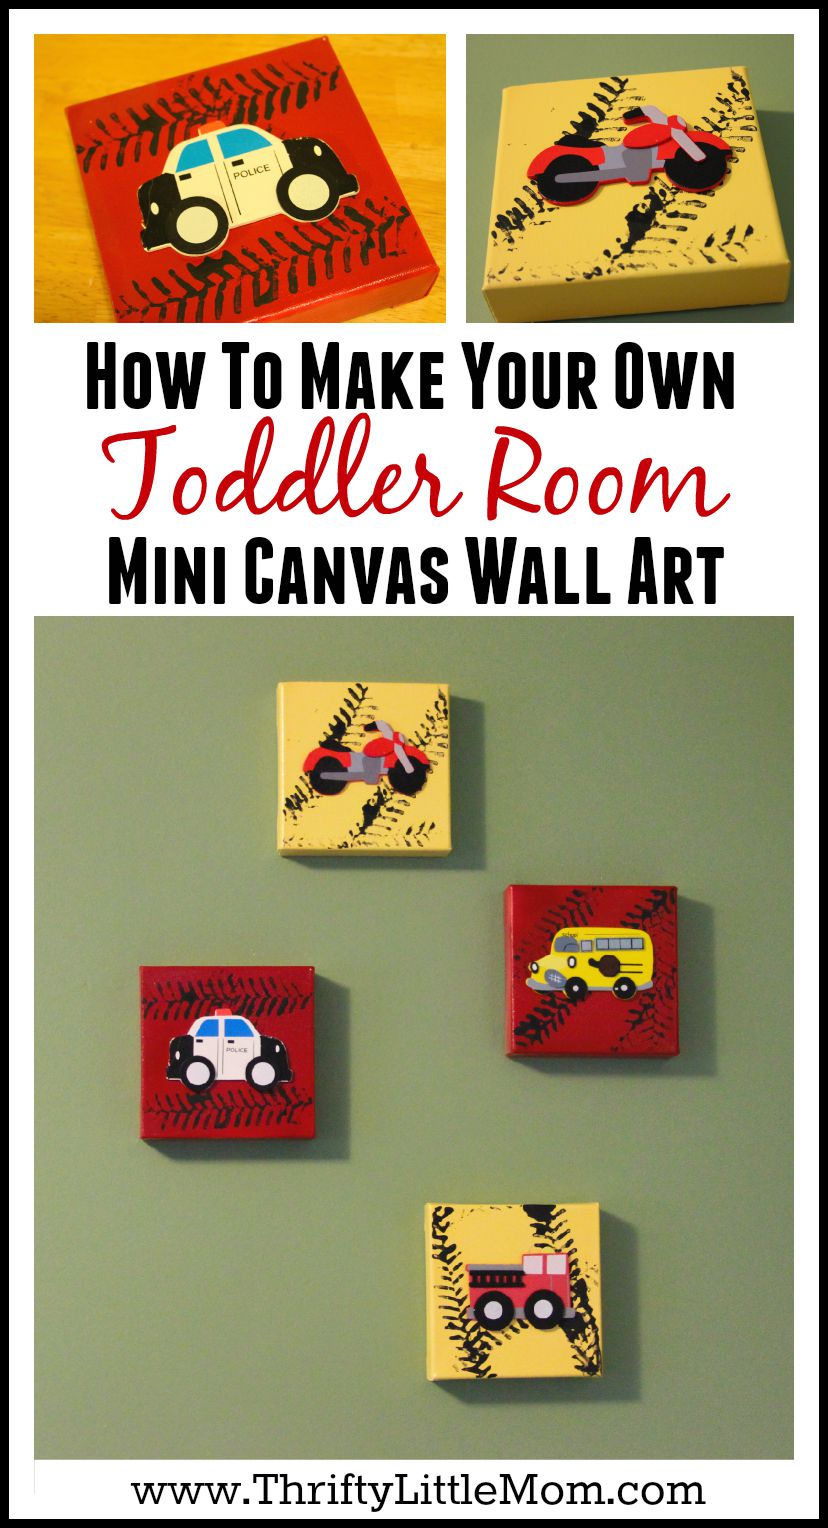 How To Make Your Own Toddler Room Mini Canvas Wall Art for just few bucks!